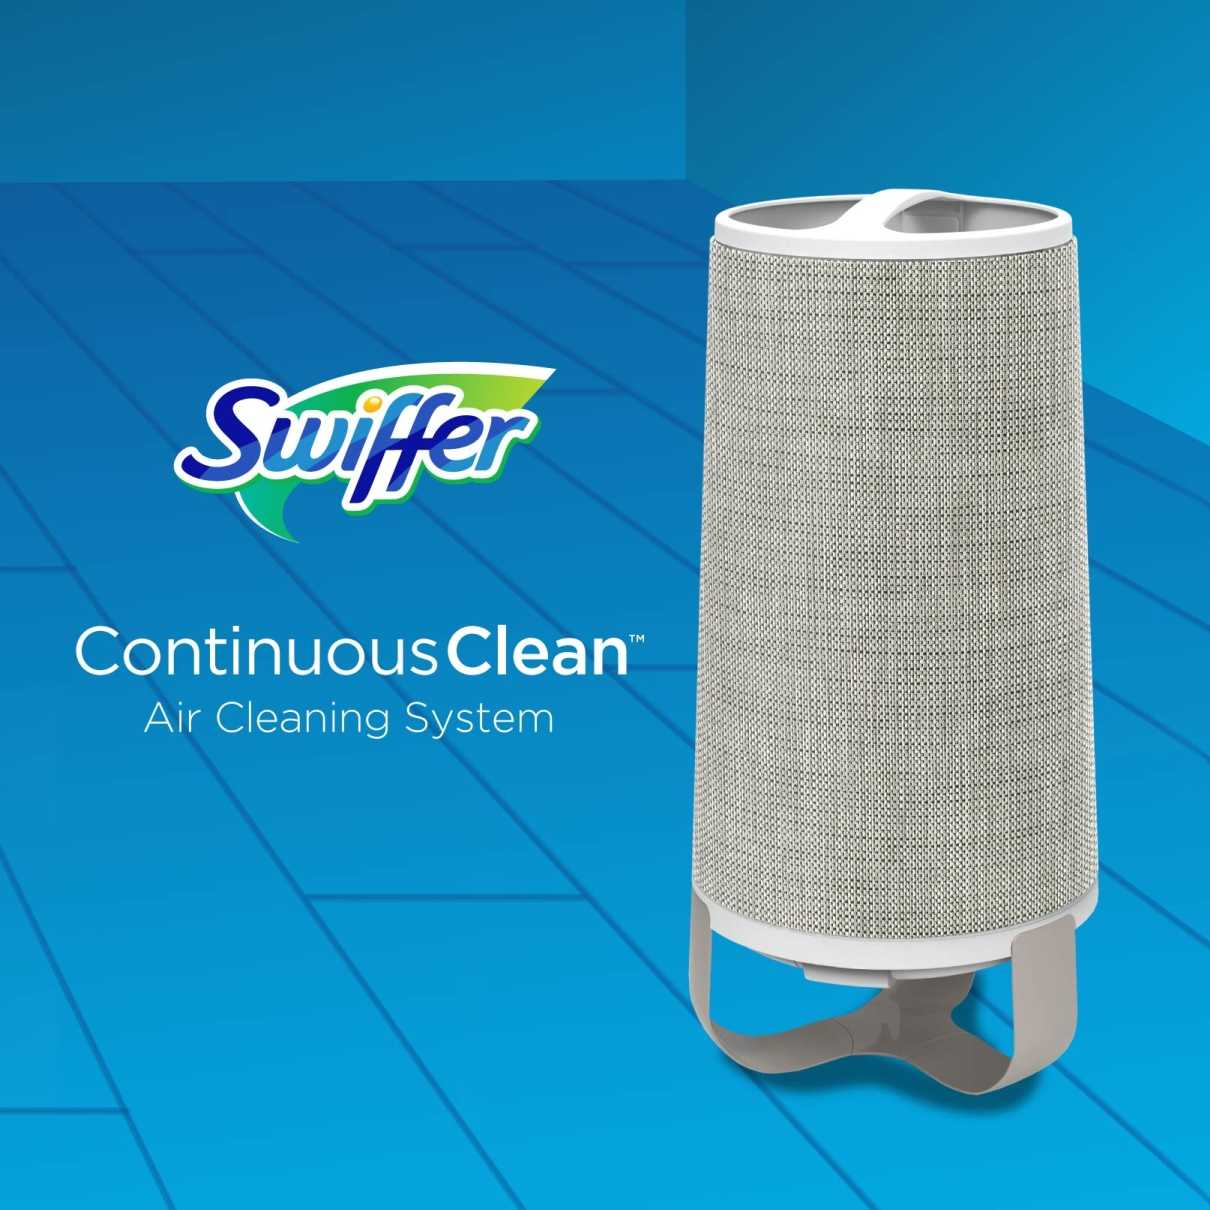 Swiffer-Continuous-Clean-01-DT